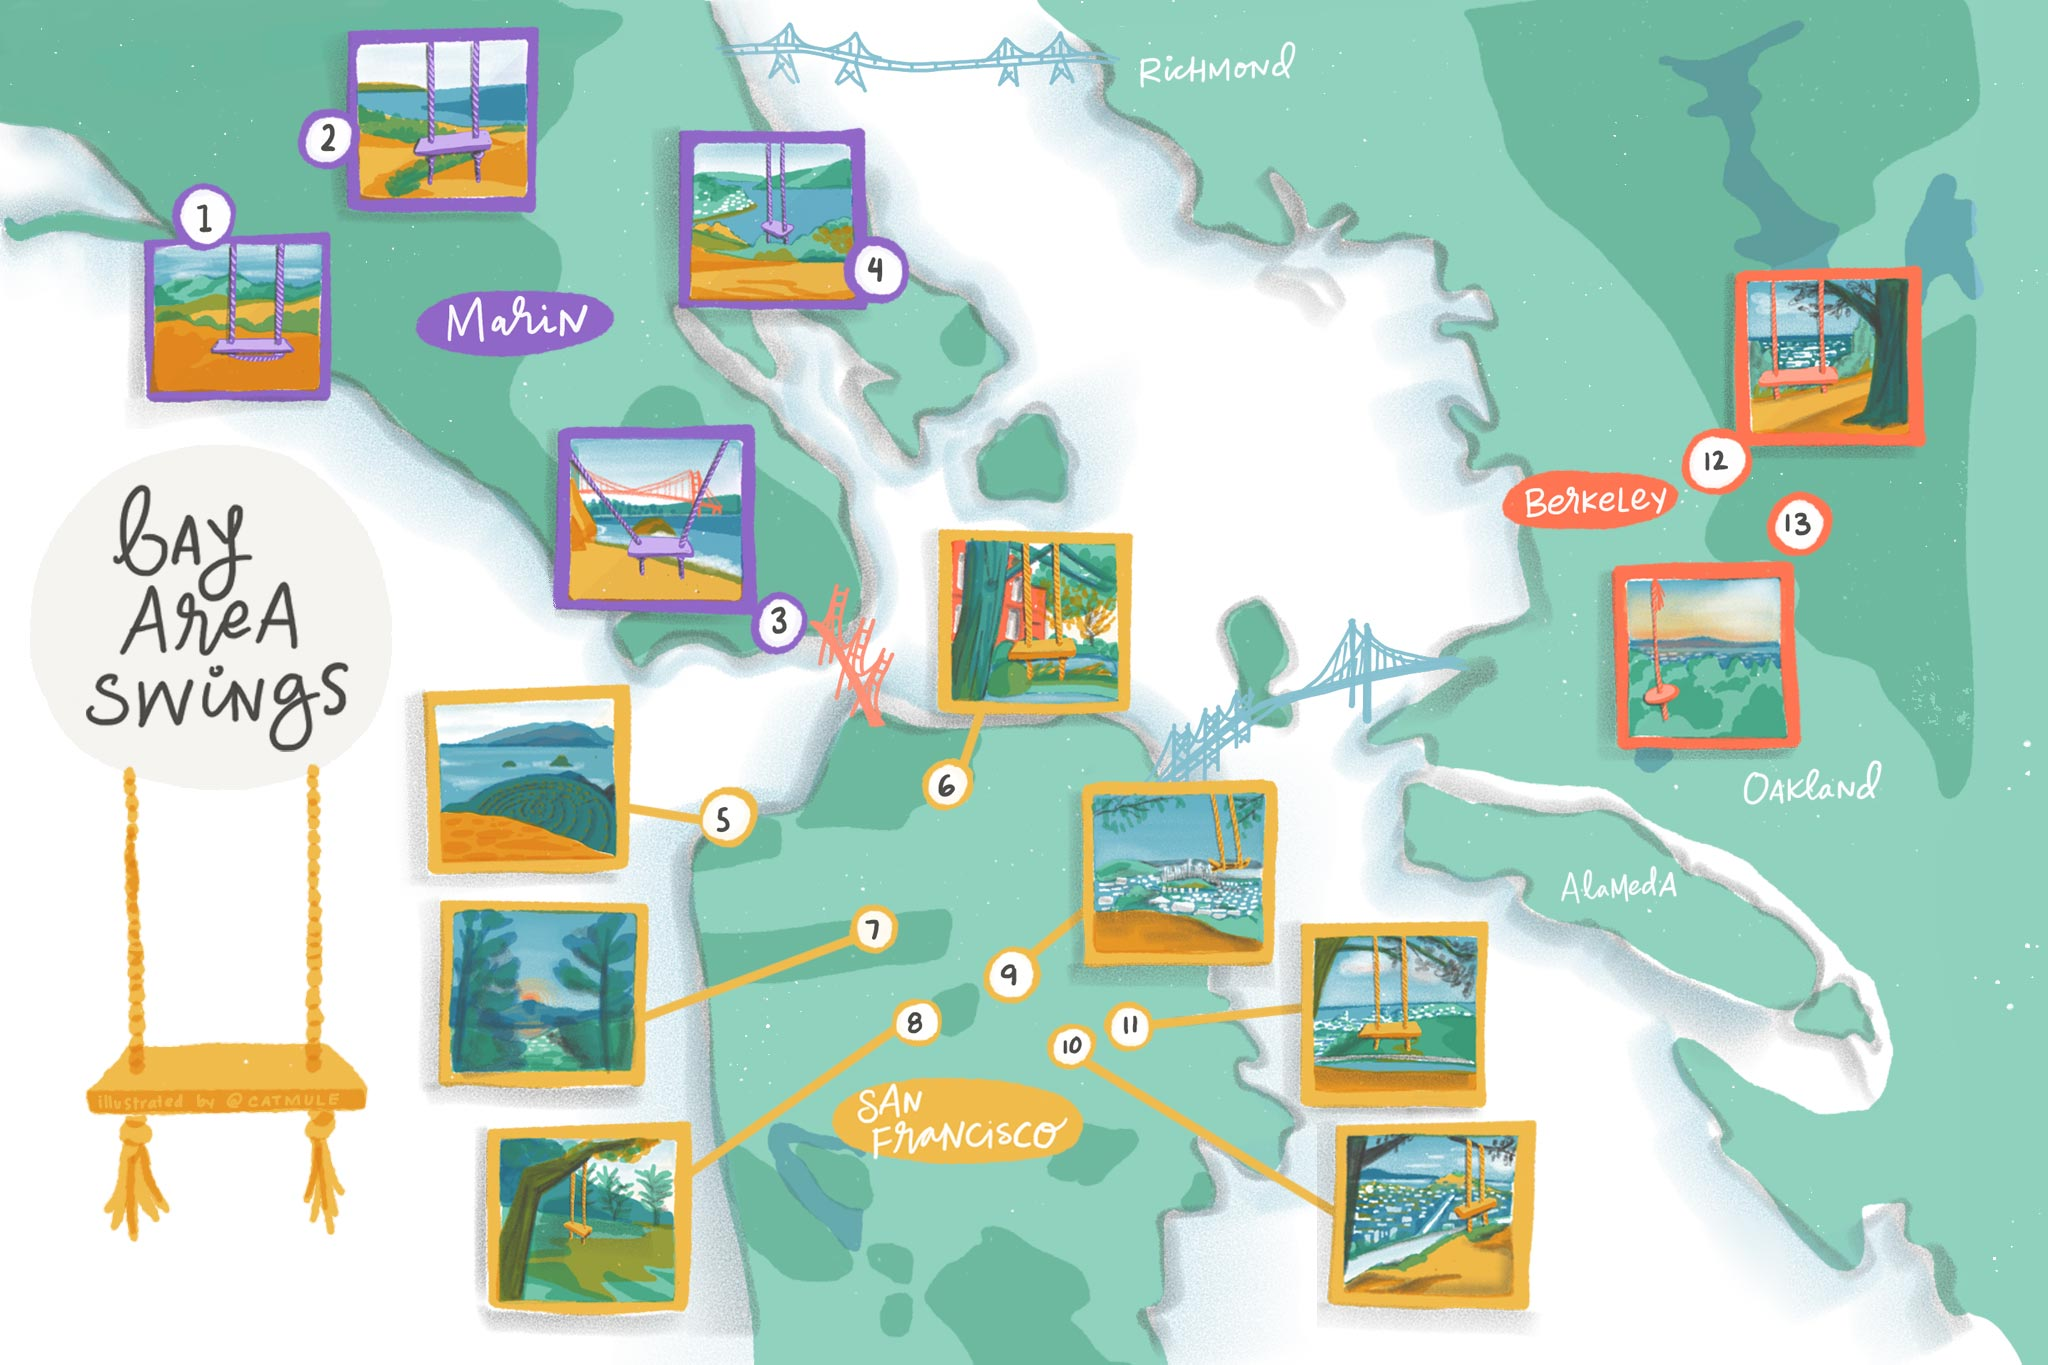 Bay Area Highway Map : This page shows the elevation/altitude information of san francisco bay area, ca, usa, including elevation map, topographic map, narometric pressure, longitude and latitude.